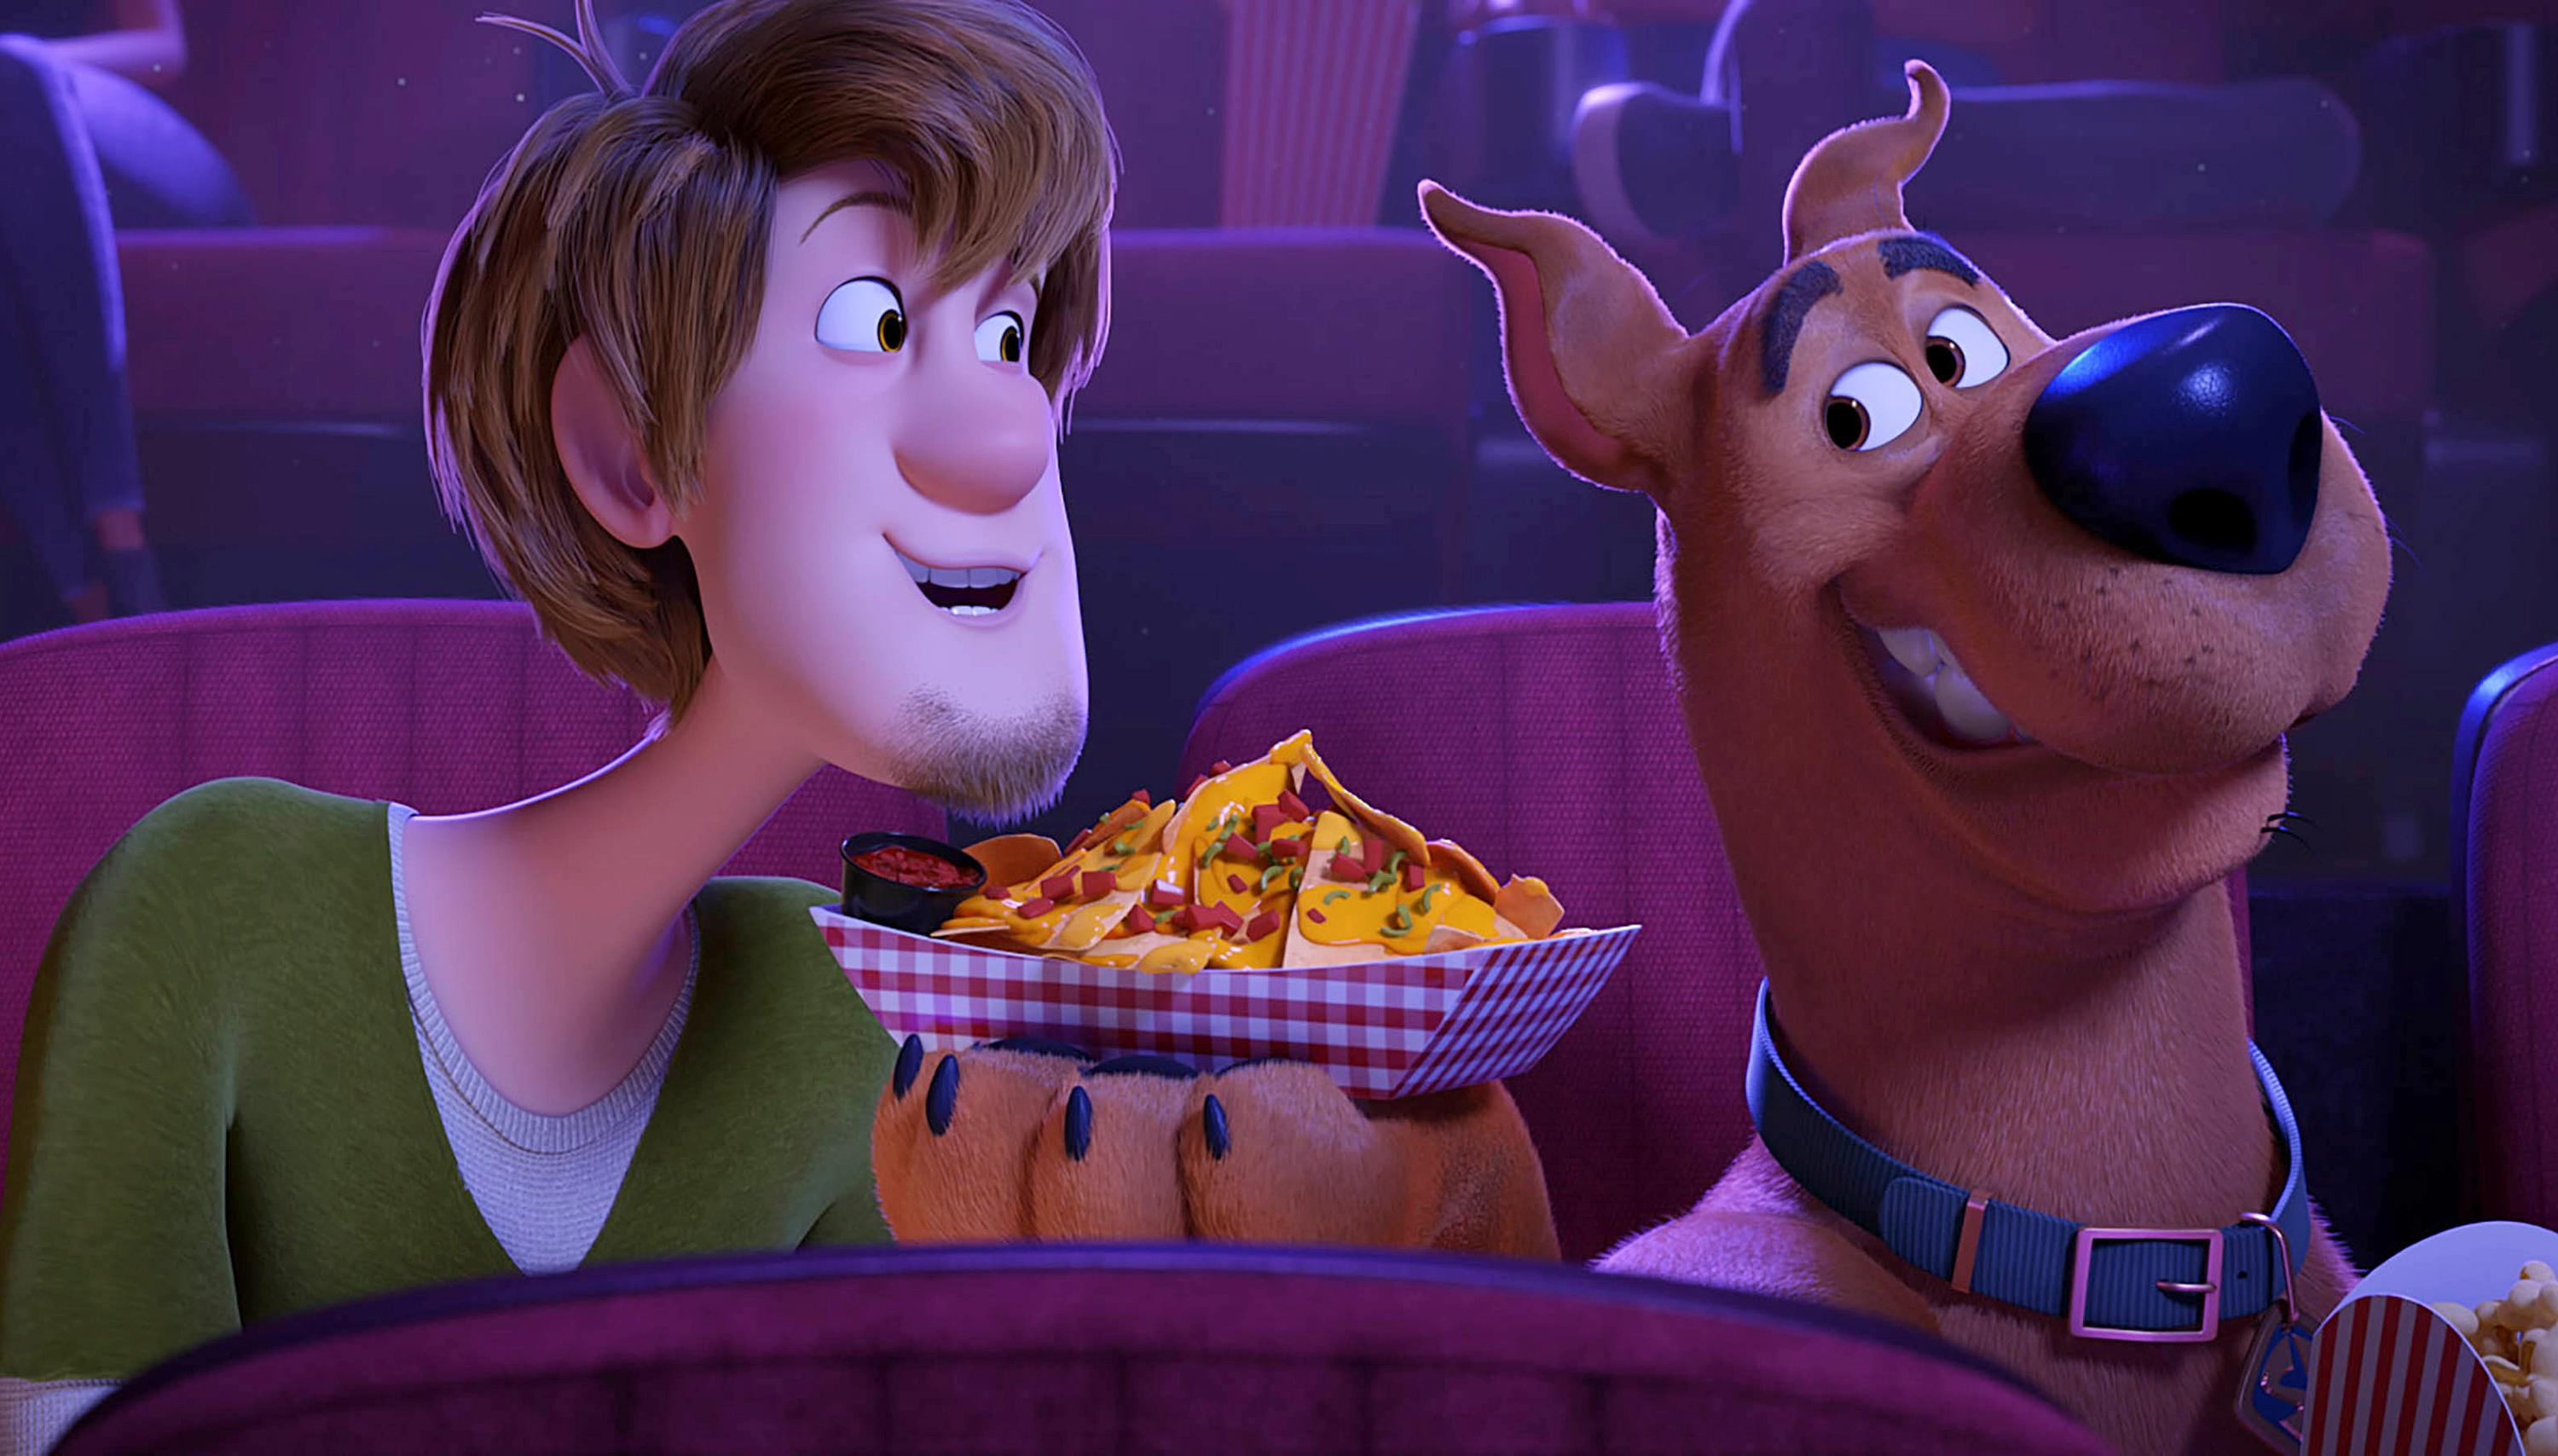 Scoob! Review: New Scooby-Doo Movie is Goofy and Charming | Den of Geek